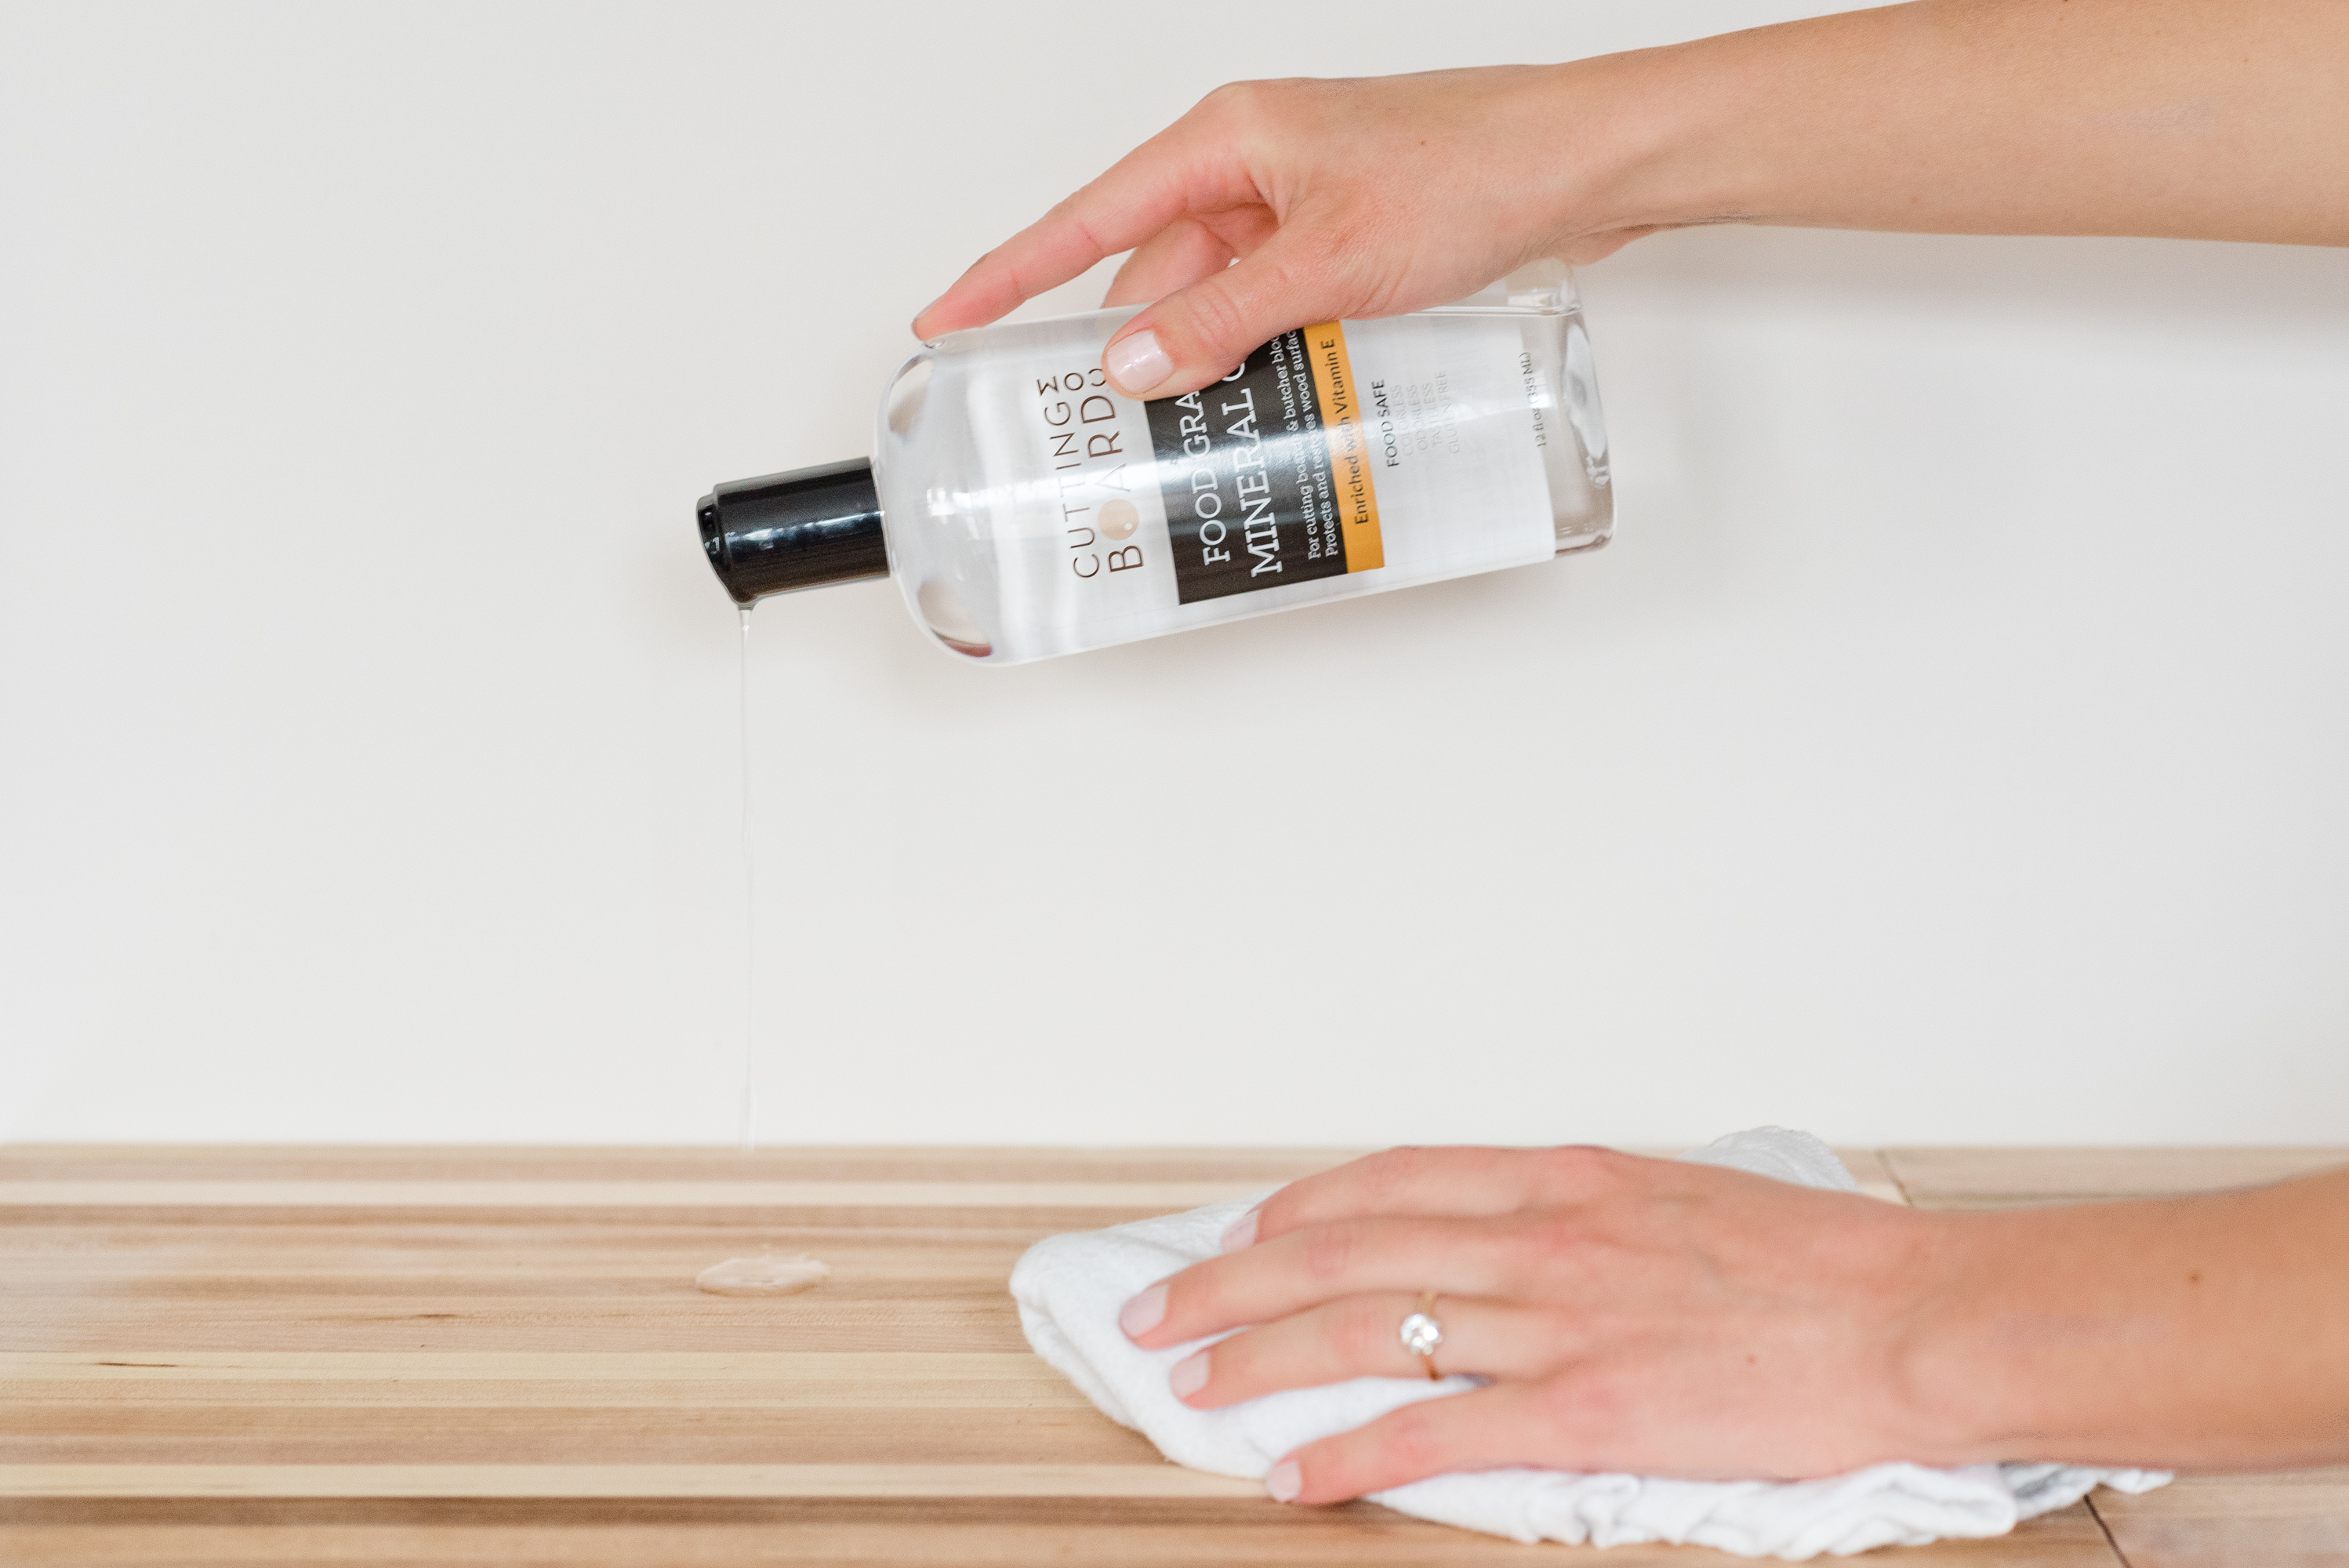 How To Oil Butcher Block Countertops | Kitchn